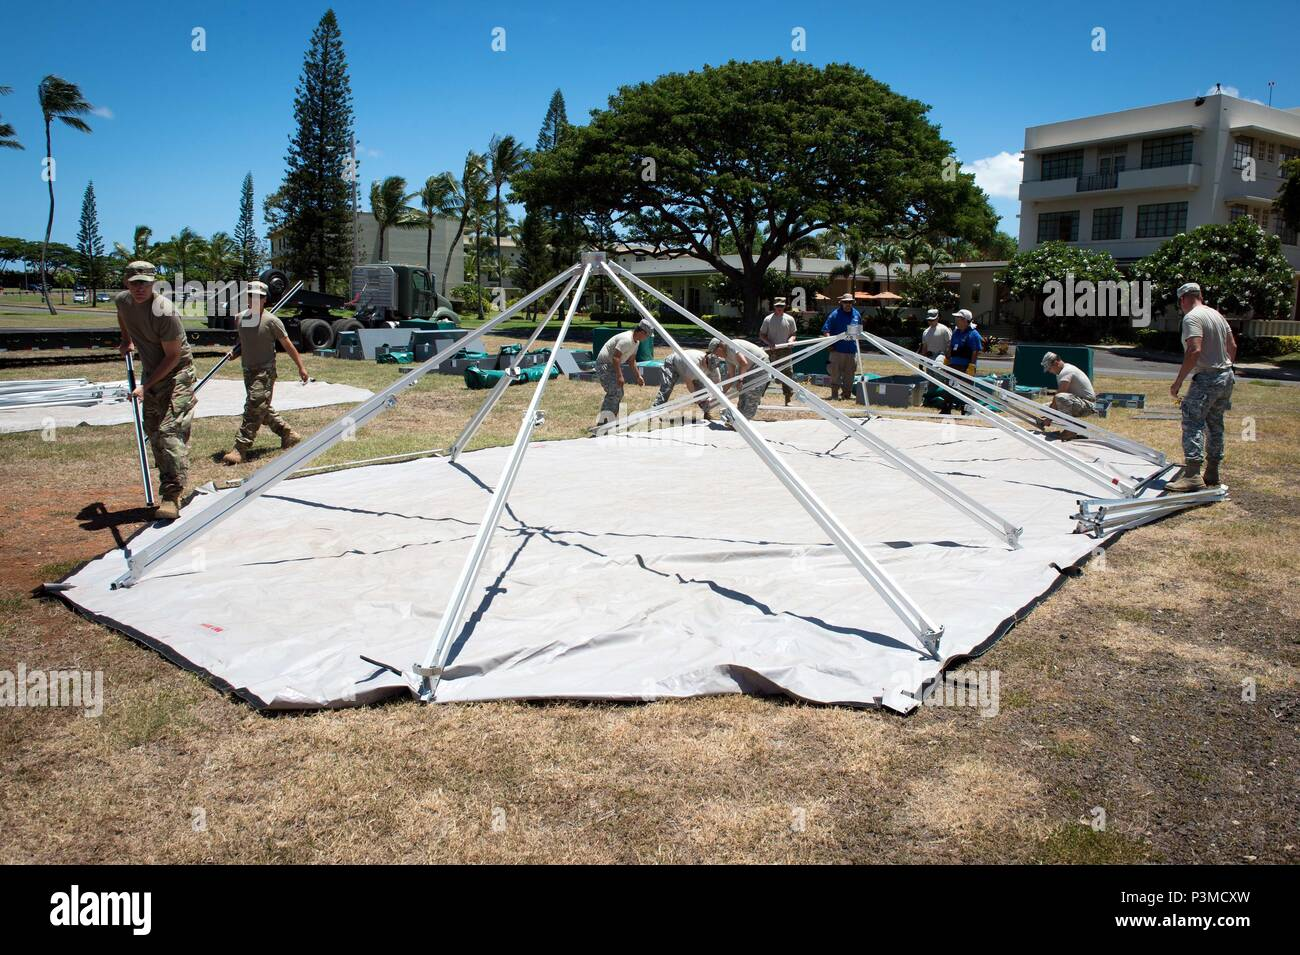 160712-N-SI773-143 FORD ISLAND, HAWAII (July 12, 2016) U.S. Army Soldiers assigned to 445th Civil Affairs Battalion setup a field hospital for Rim of the Pacific 2016. Twenty-six nations, more than 40 ships and submarines, more than 200 aircraft, and 25,000 personnel are participating in RIMPAC from June 30 to Aug. 4, in and around the Hawaiian Islands and Southern California. The world's largest international maritime exercise, RIMPAC provides a unique training opportunity that helps participants foster and sustain the cooperative relationships that are critical to ensuring the safety of sea  Stock Photo